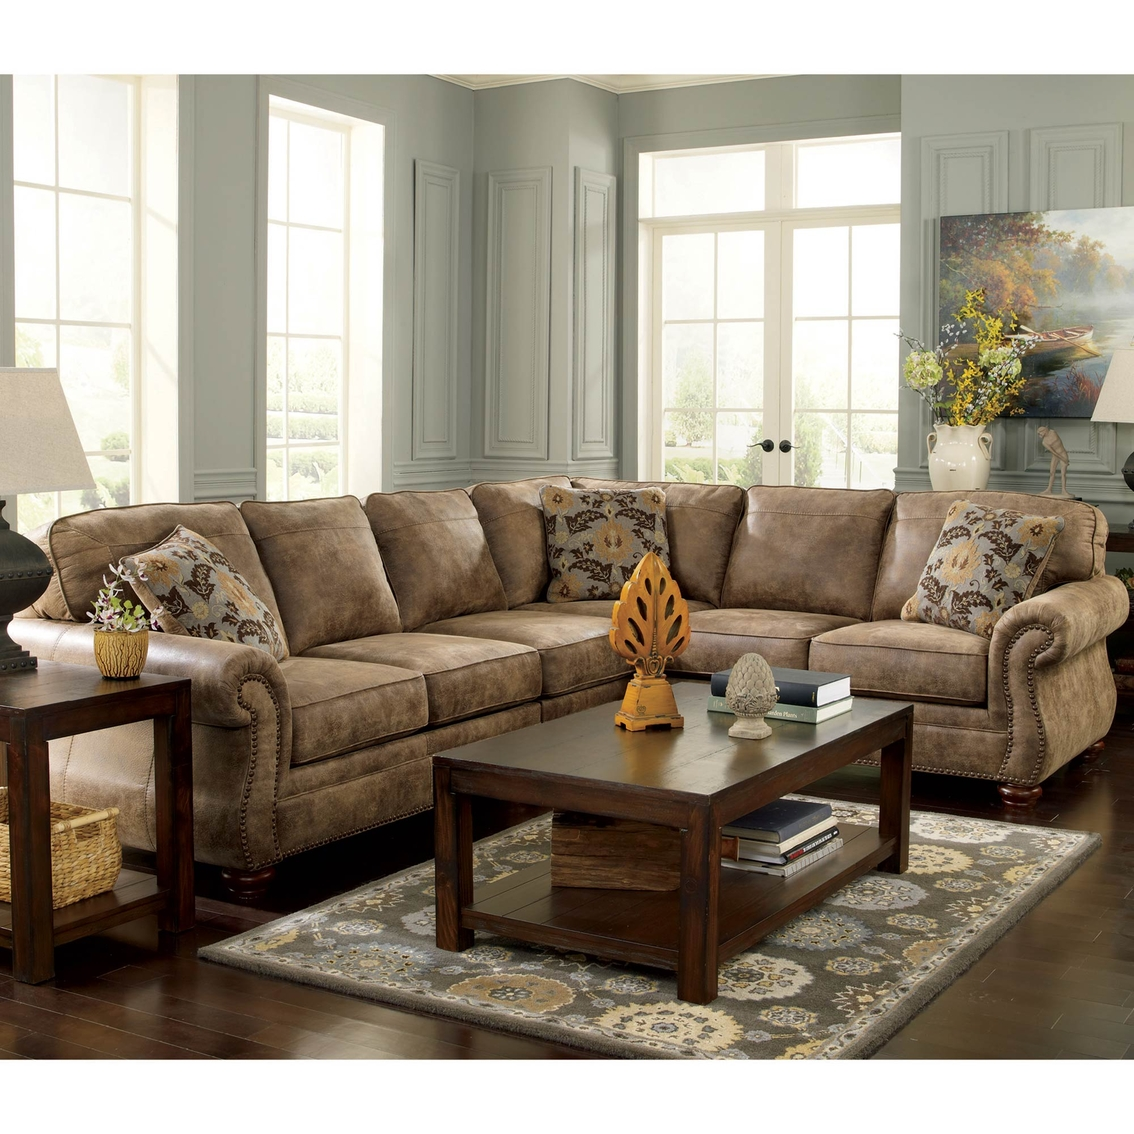 Ashley Sofas Prices: Signature Design By Ashley Larkinhurst 3 Pc. Sectional Laf